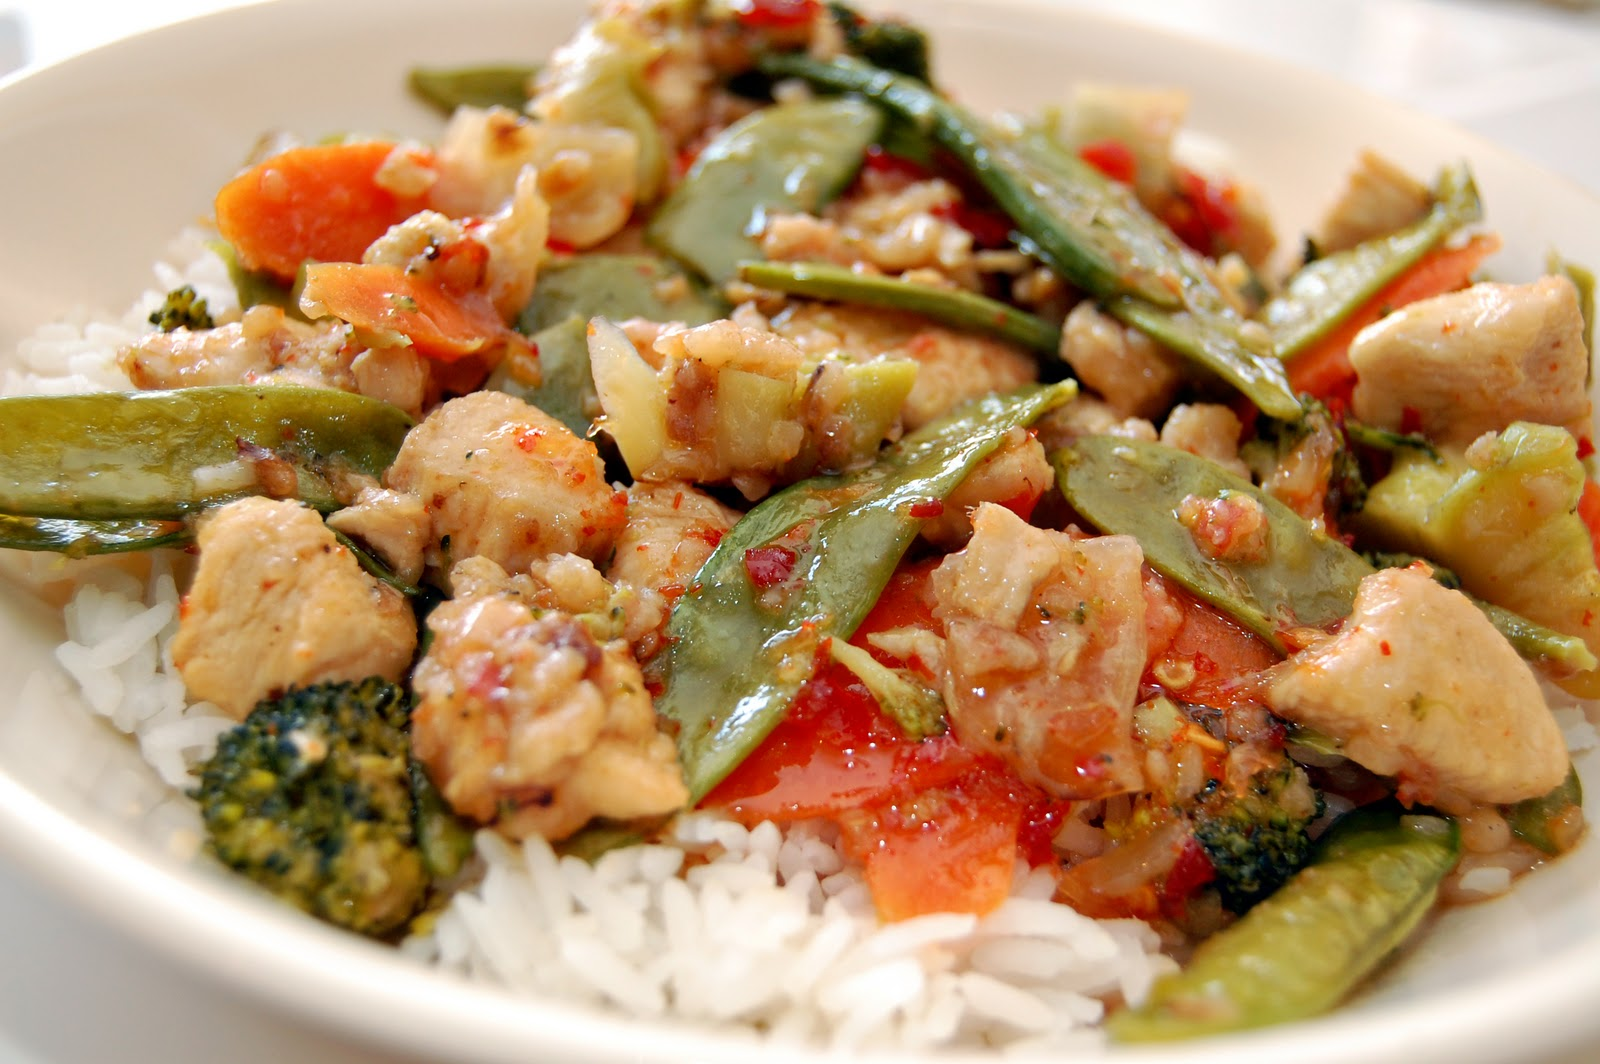 chicken stir fry soy sauce recipes yummly chili sauce chicken stir fry ...